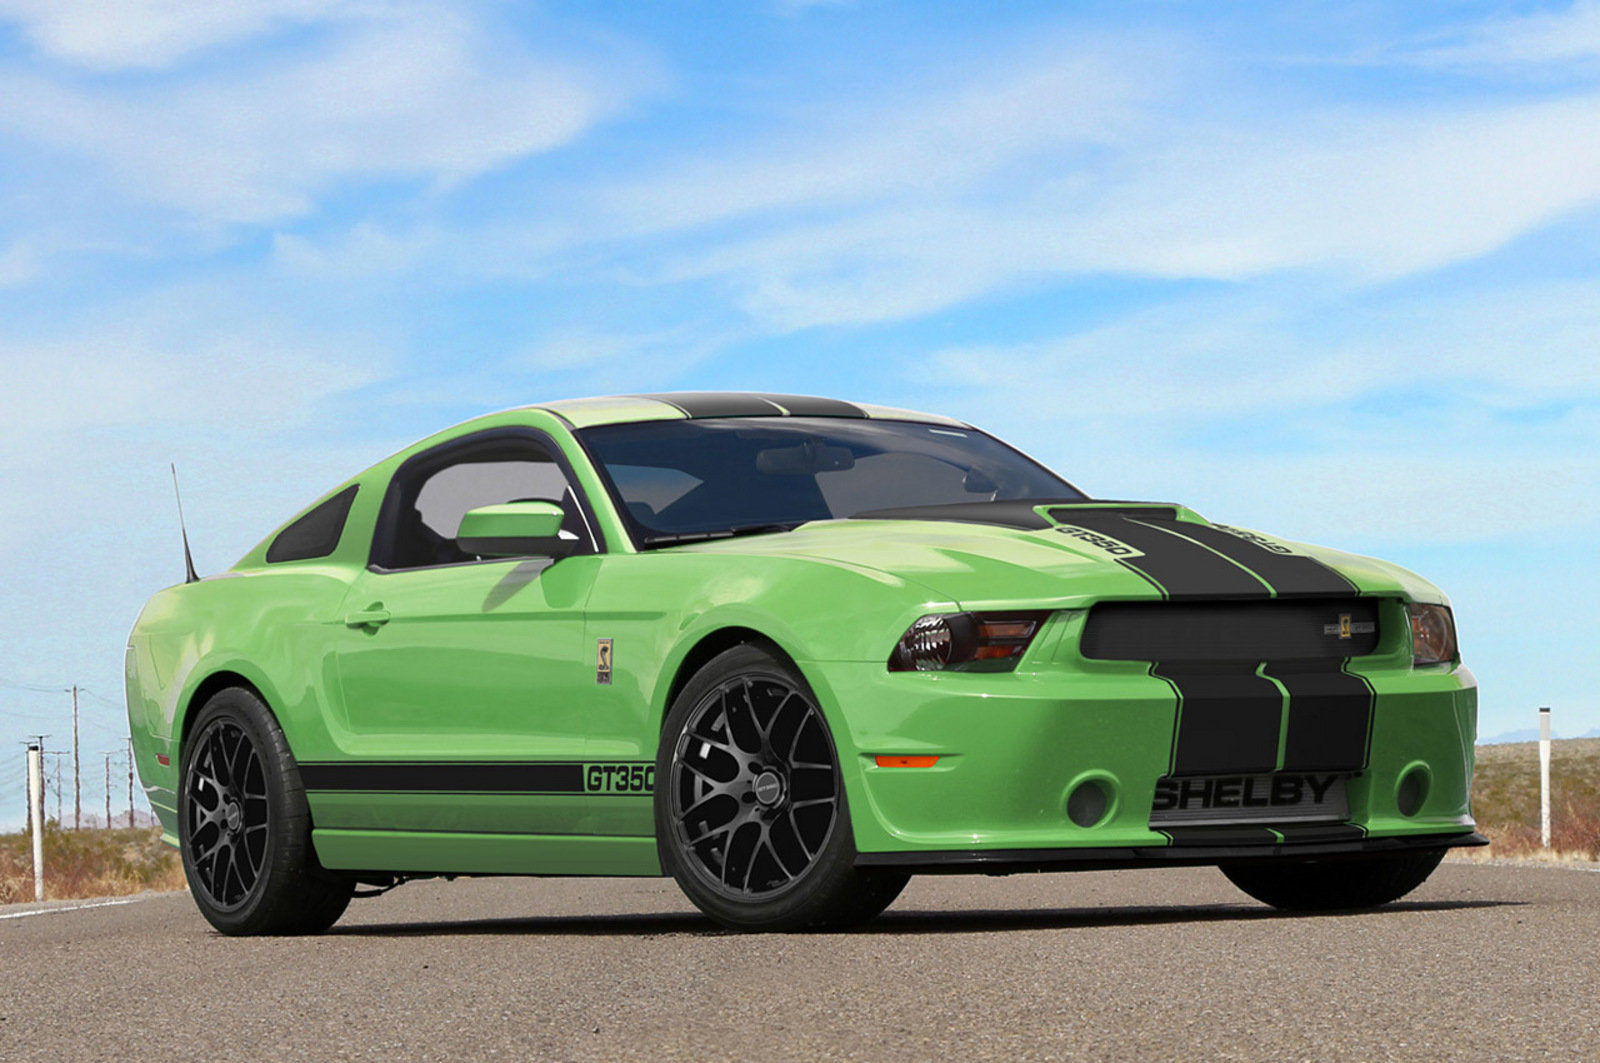 2013 Ford Mustang Shelby GT350 Review - Top Speed